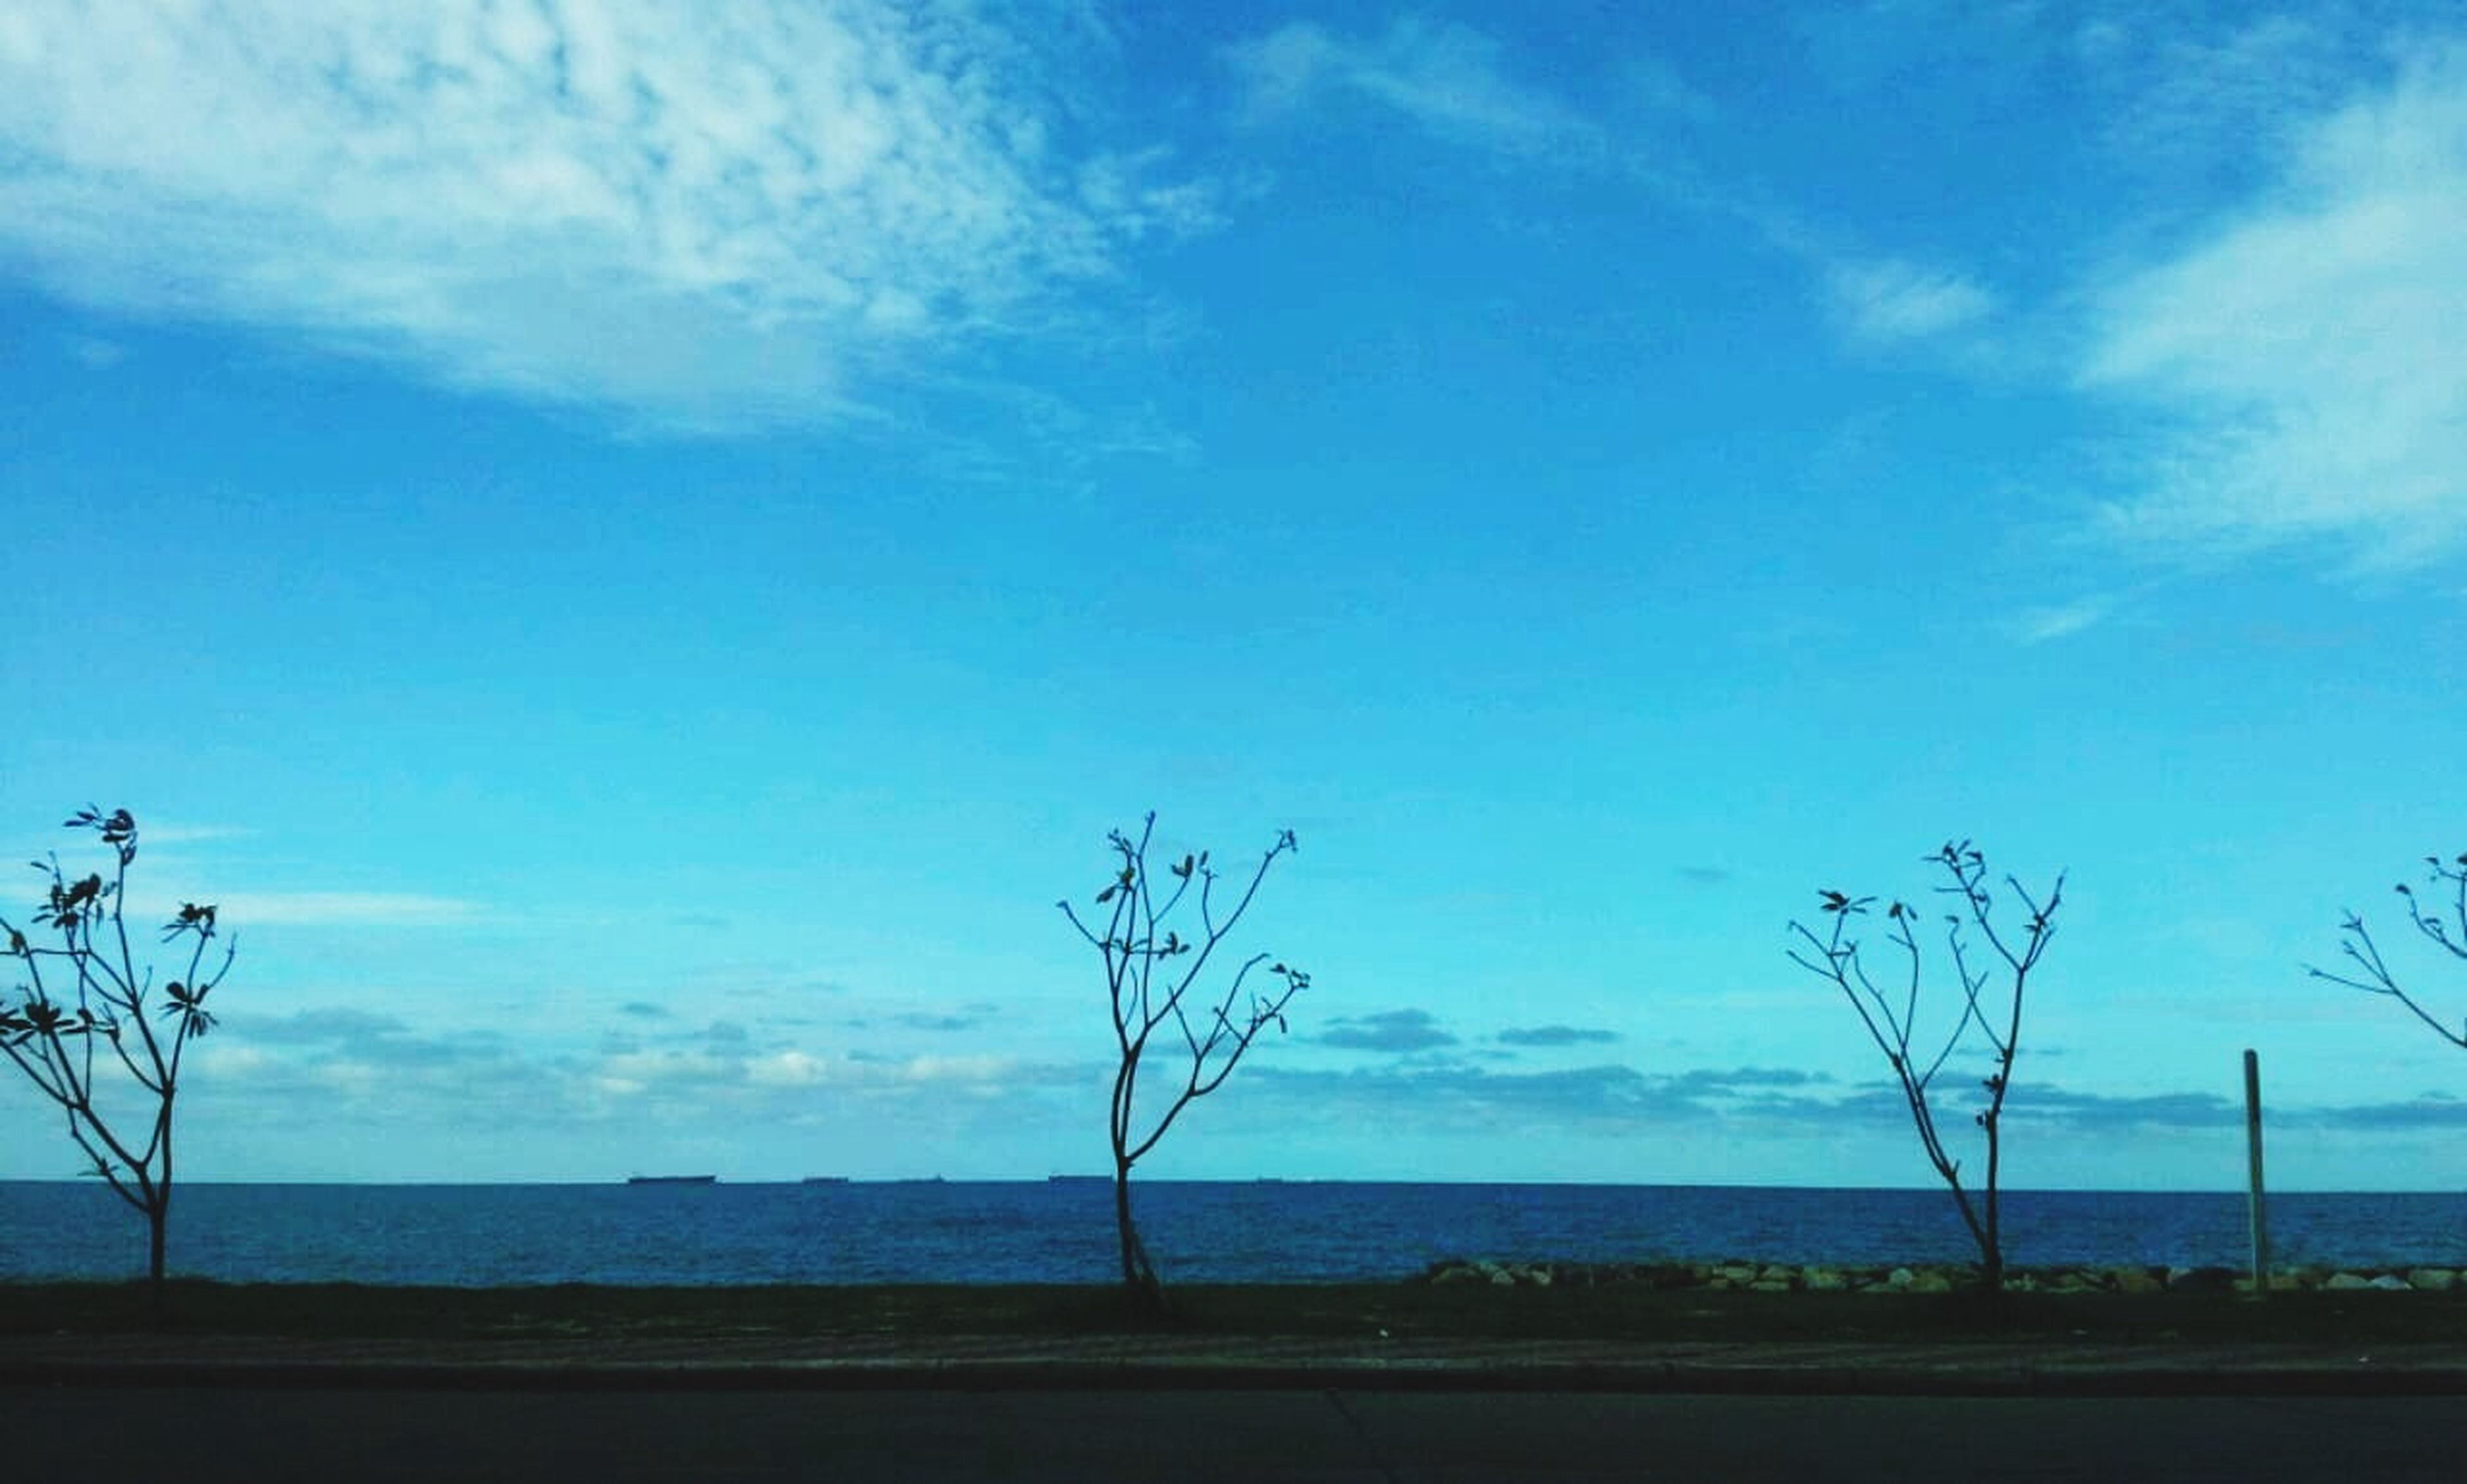 tranquility, sky, tranquil scene, scenics, bare tree, blue, tree, horizon over water, sea, beauty in nature, nature, water, landscape, beach, cloud, branch, shore, field, cloud - sky, idyllic